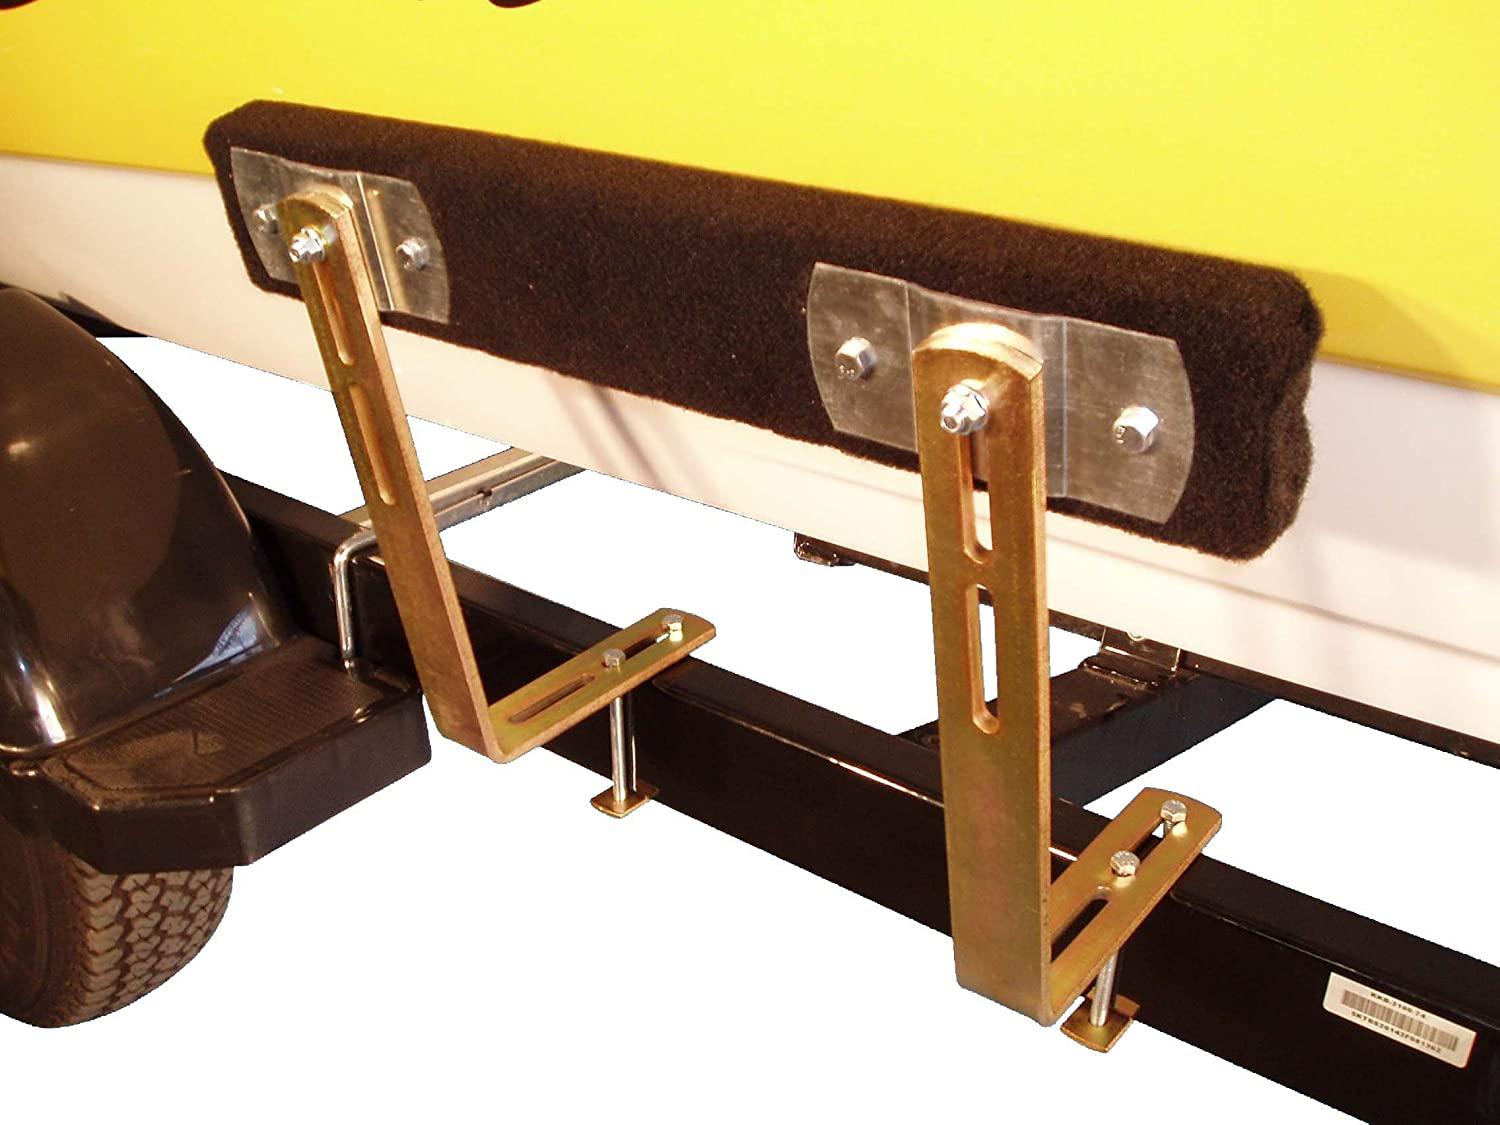 // 4 Ft Boat Trailer Bunk Guide-On 2 Ft VE-VE Inc GALVANIZED finish available! 1 Pair